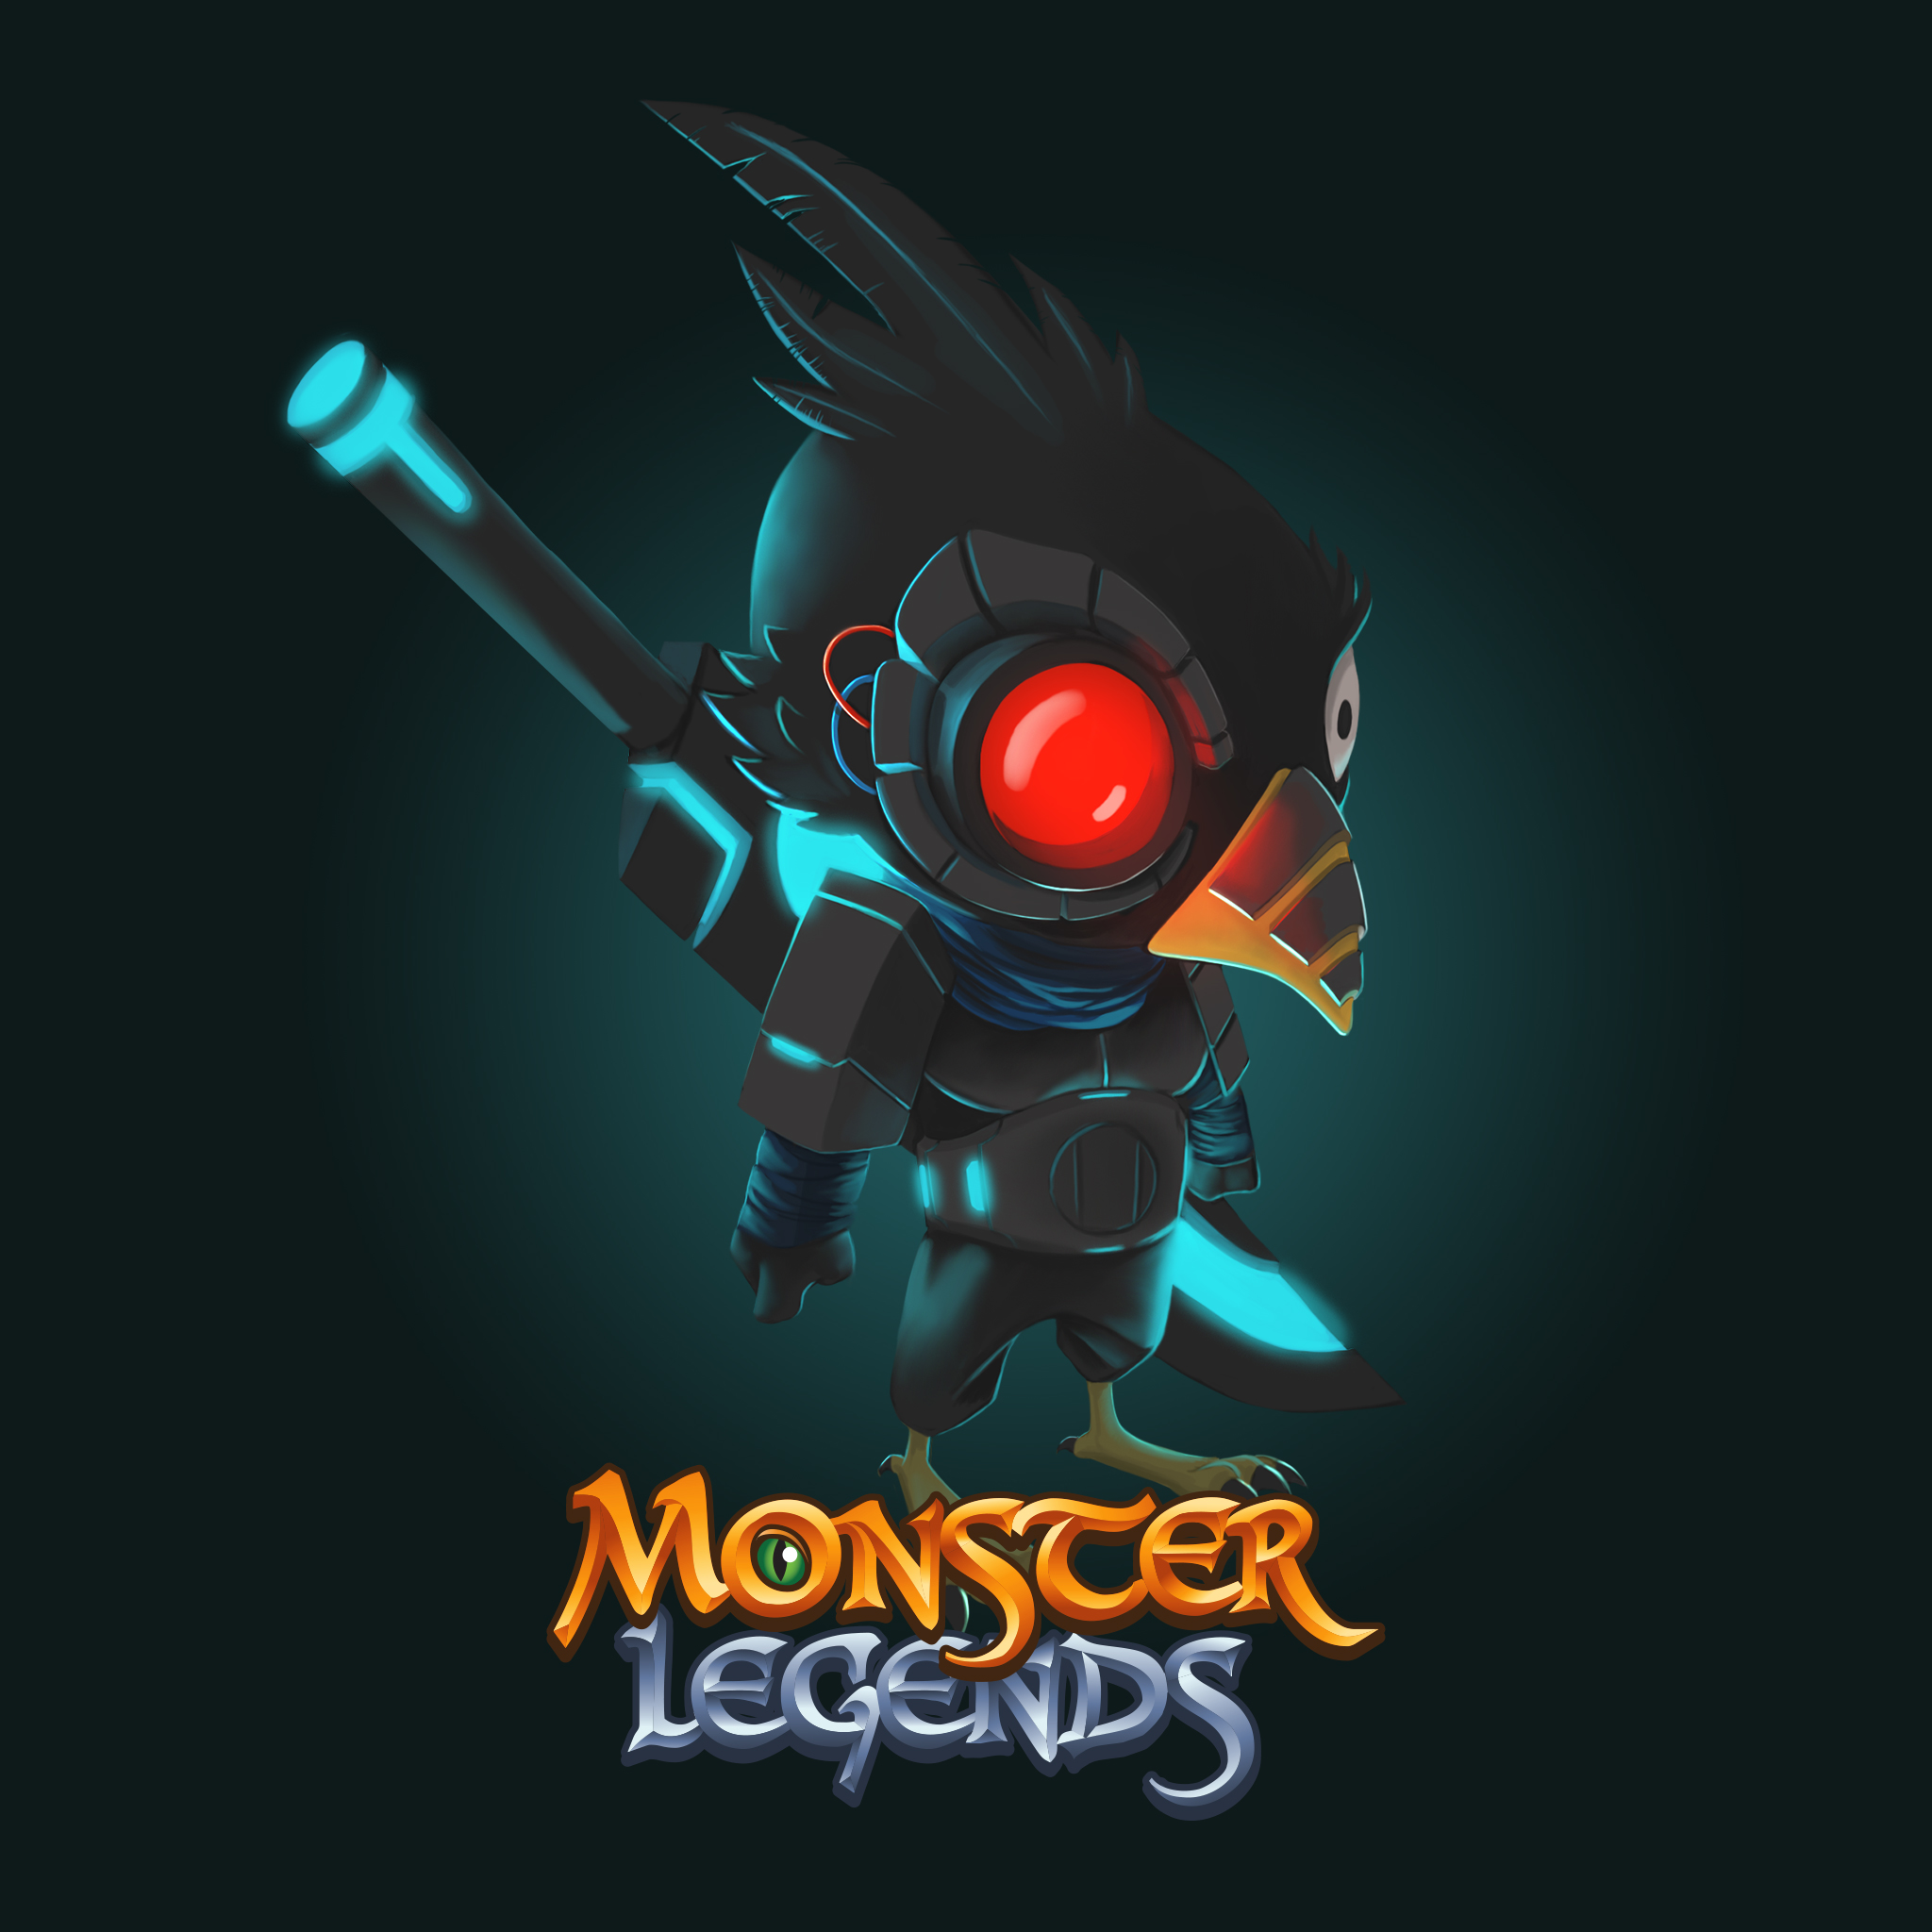 monster legends android iphone ipad wallpaper